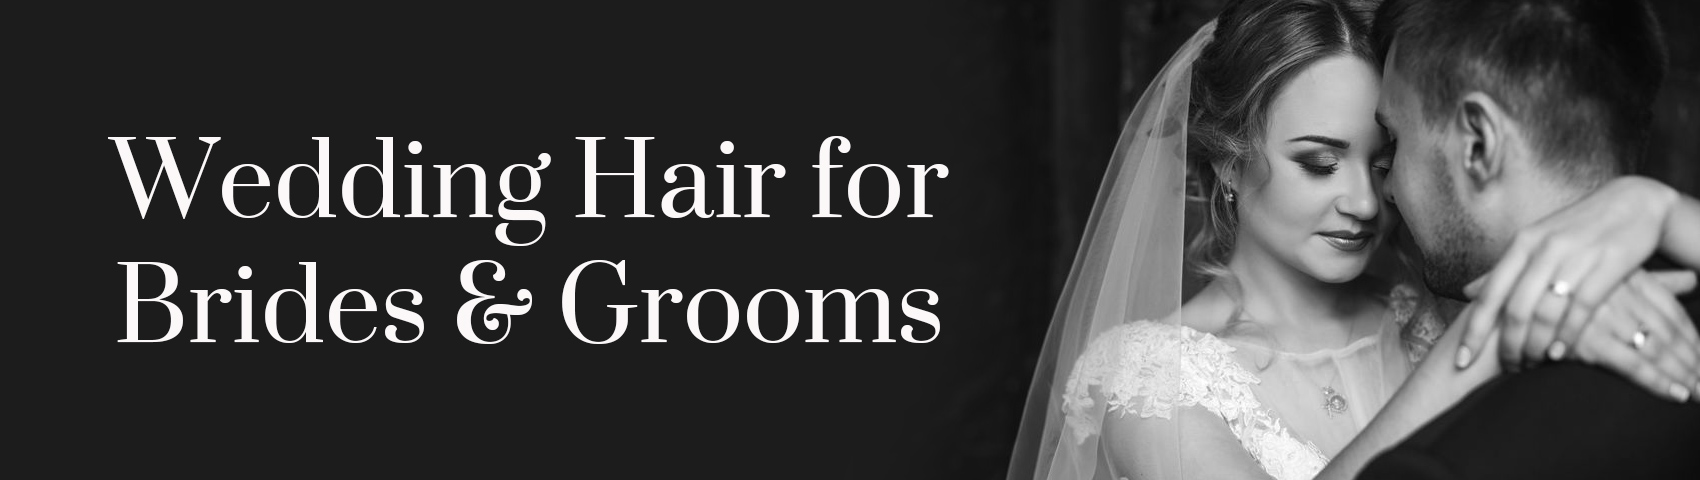 Wedding Hair for Brides Grooms BANNER